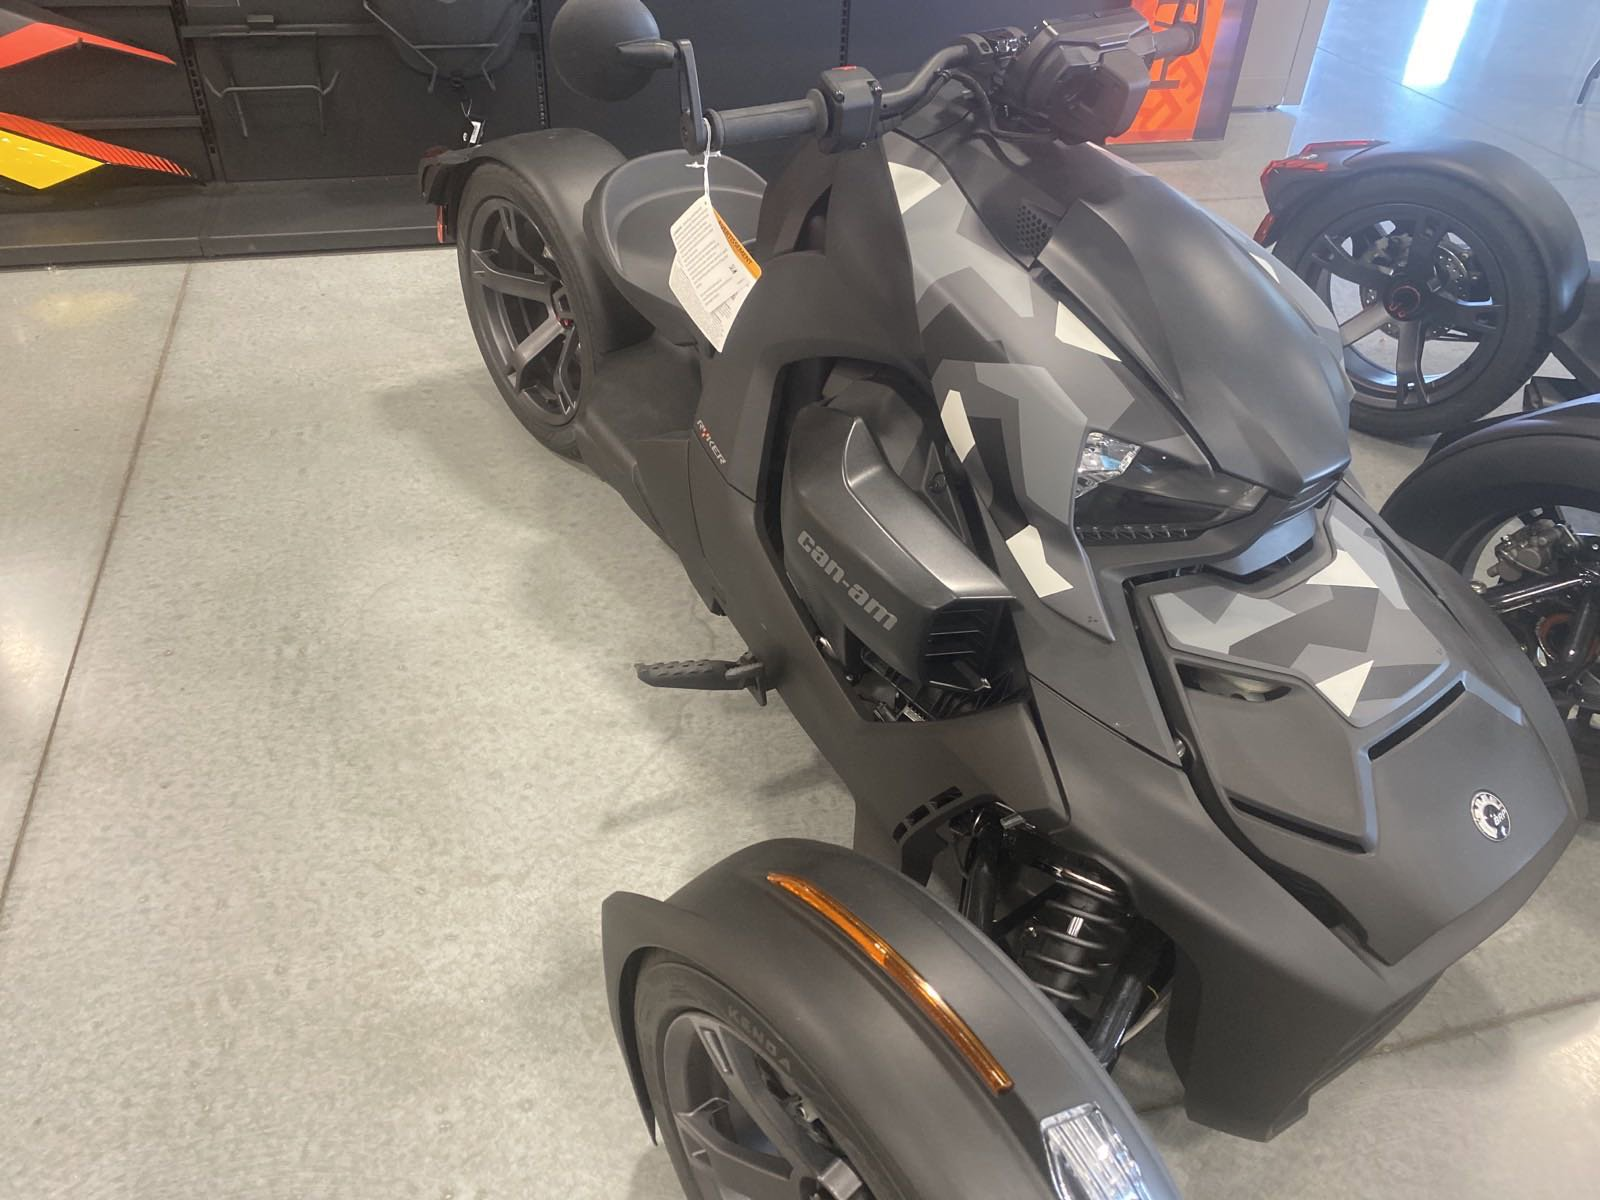 New 2020 CAN-AM RYKER 600 ACE